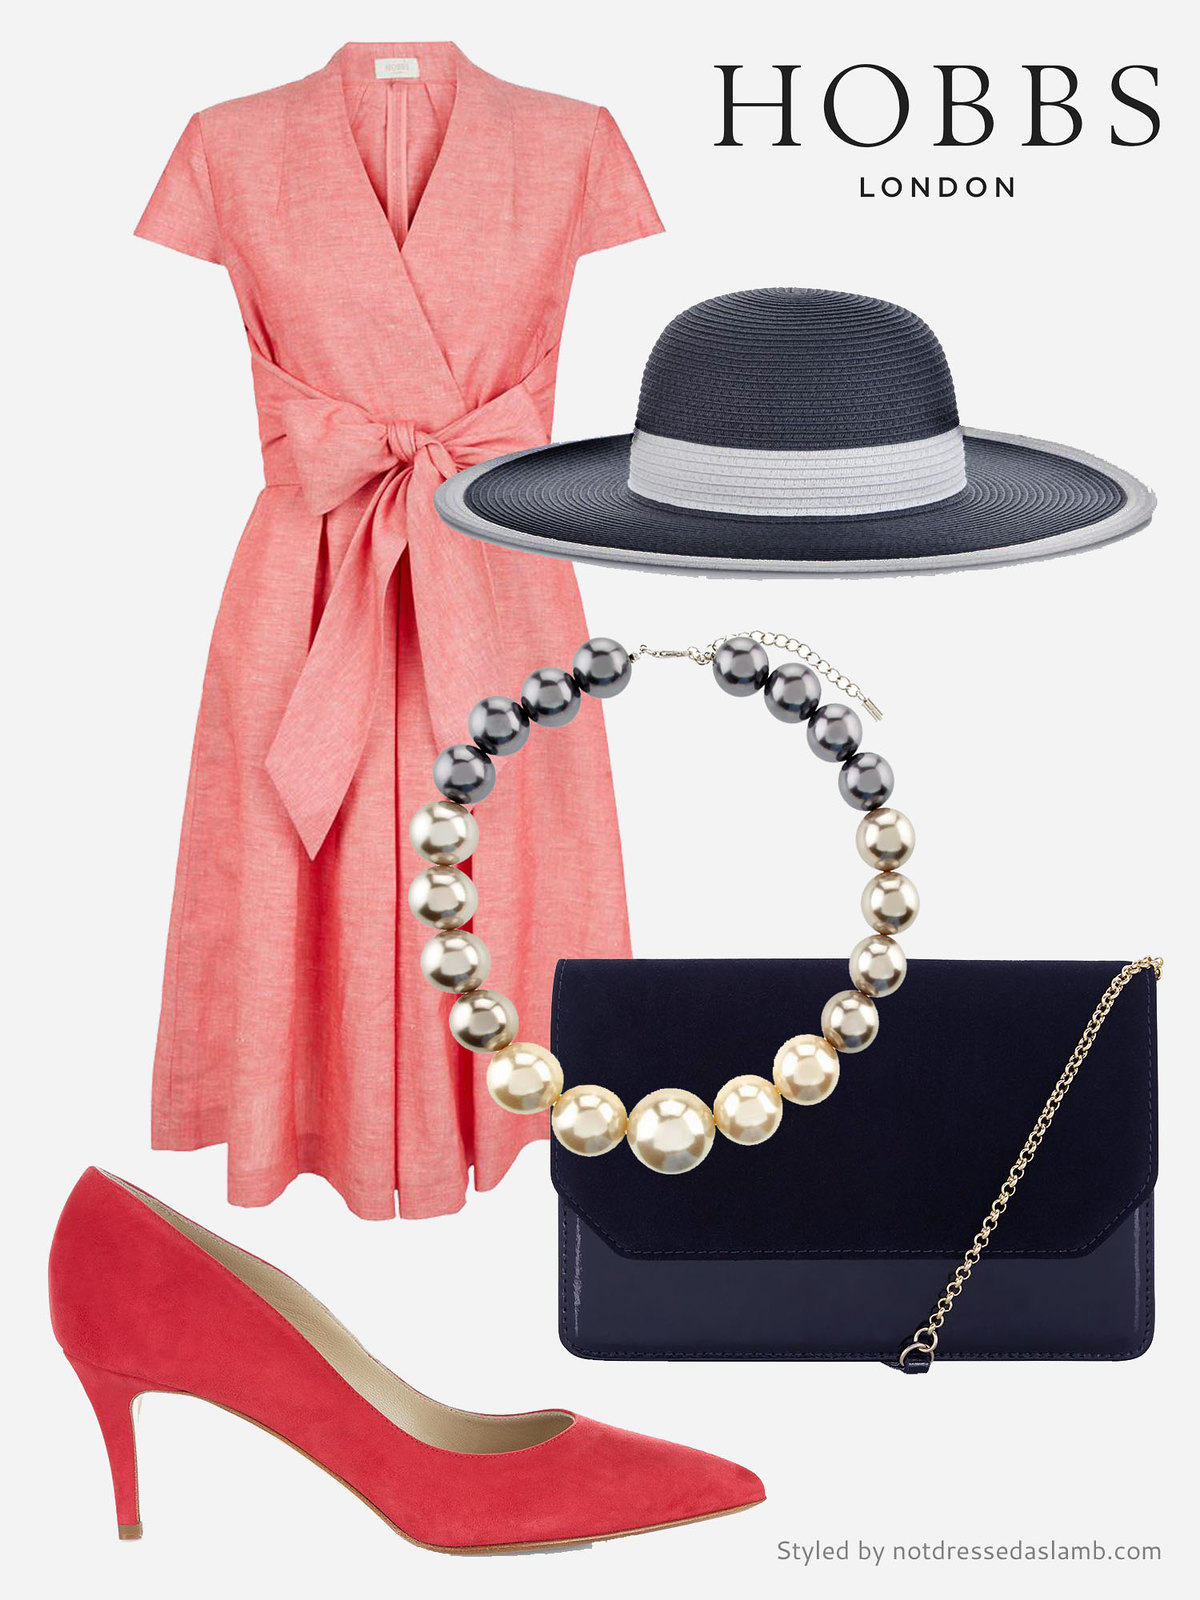 Coral dress for the races or wedding guest outfit | Hobbs SS16 styled by Not Dressed As Lamb